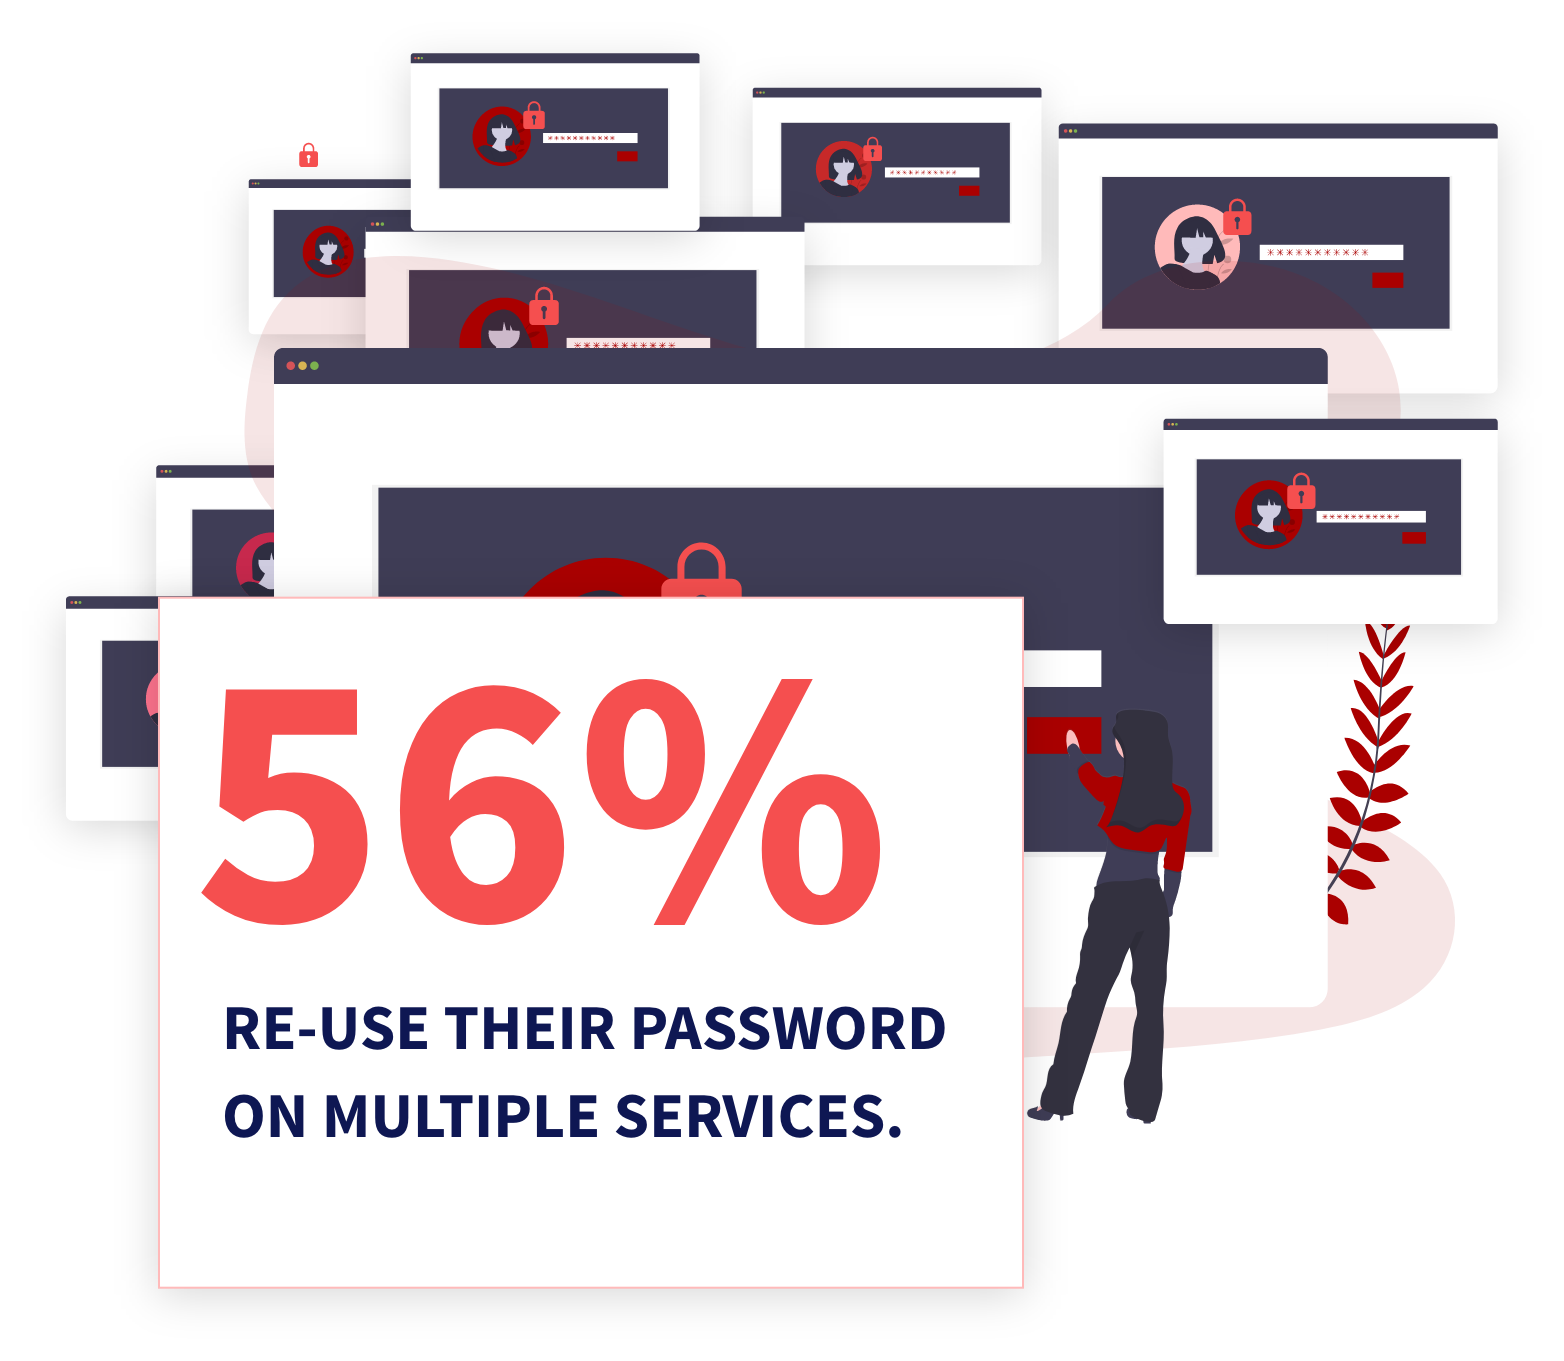 56% of users re-use their passwords